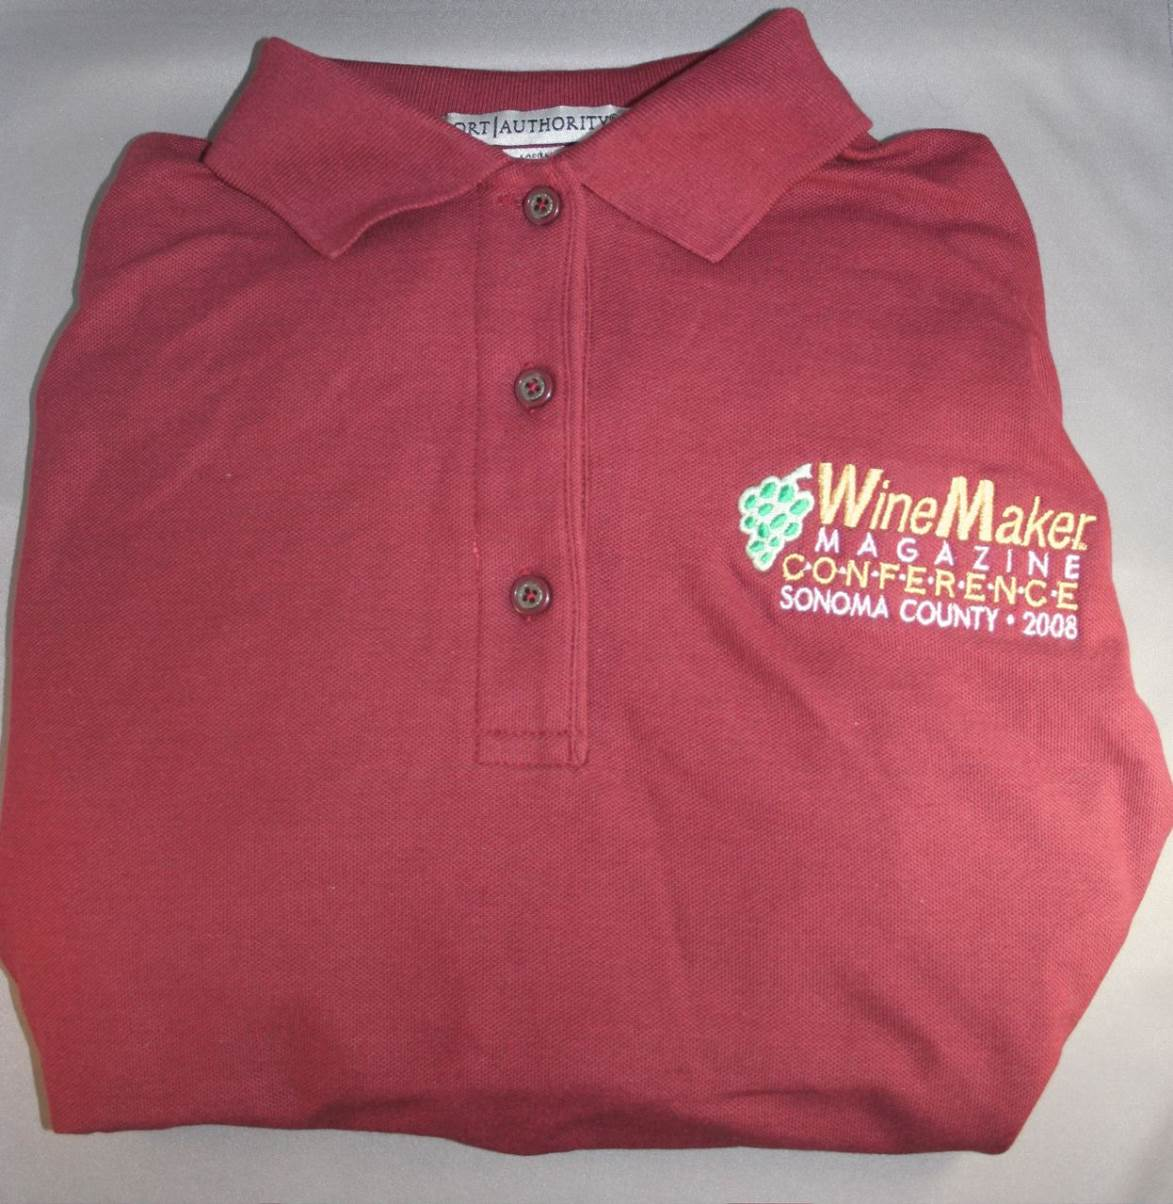 WineMaker 2008 Conference Long Sleeve Polo - Men's